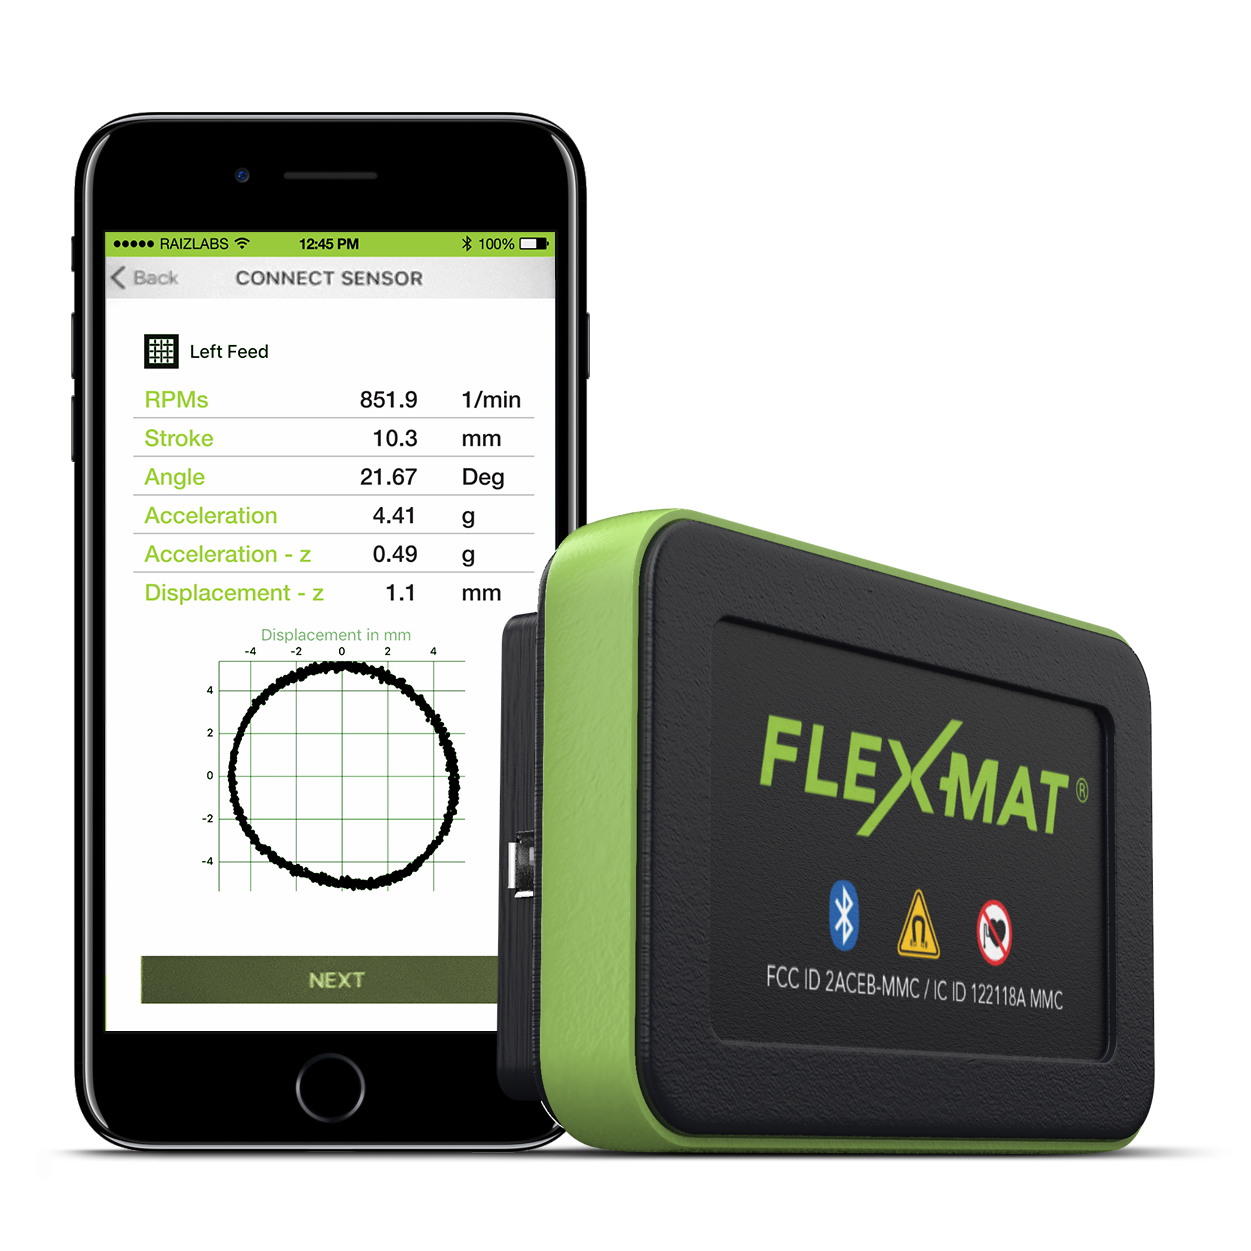 FLEX-MAT Sensor. App-controlled vibration analysis